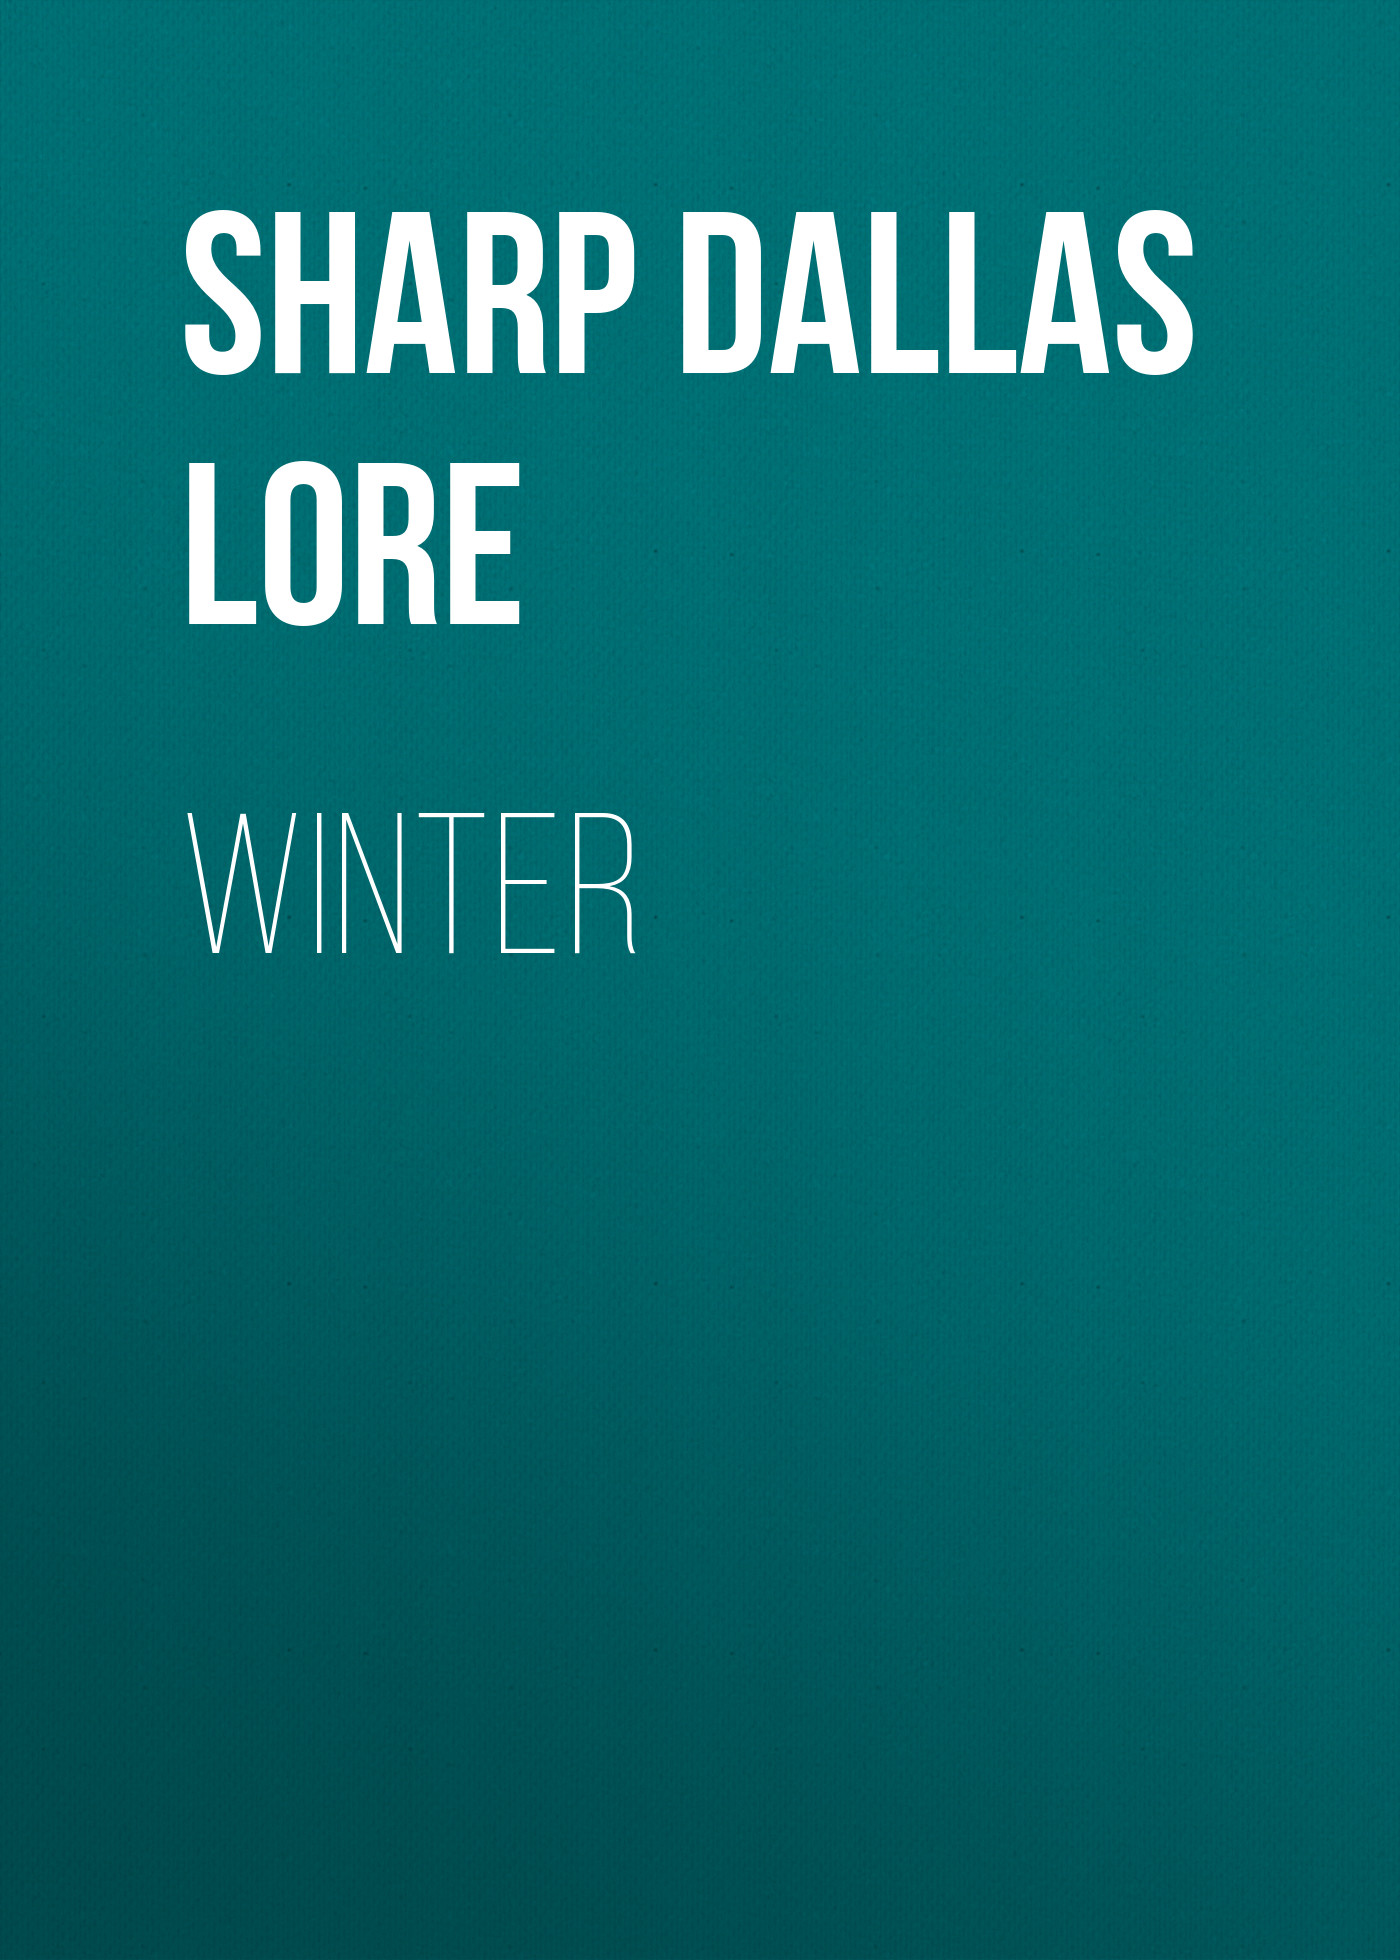 Sharp Dallas Lore Winter lore dnlt 500 brown